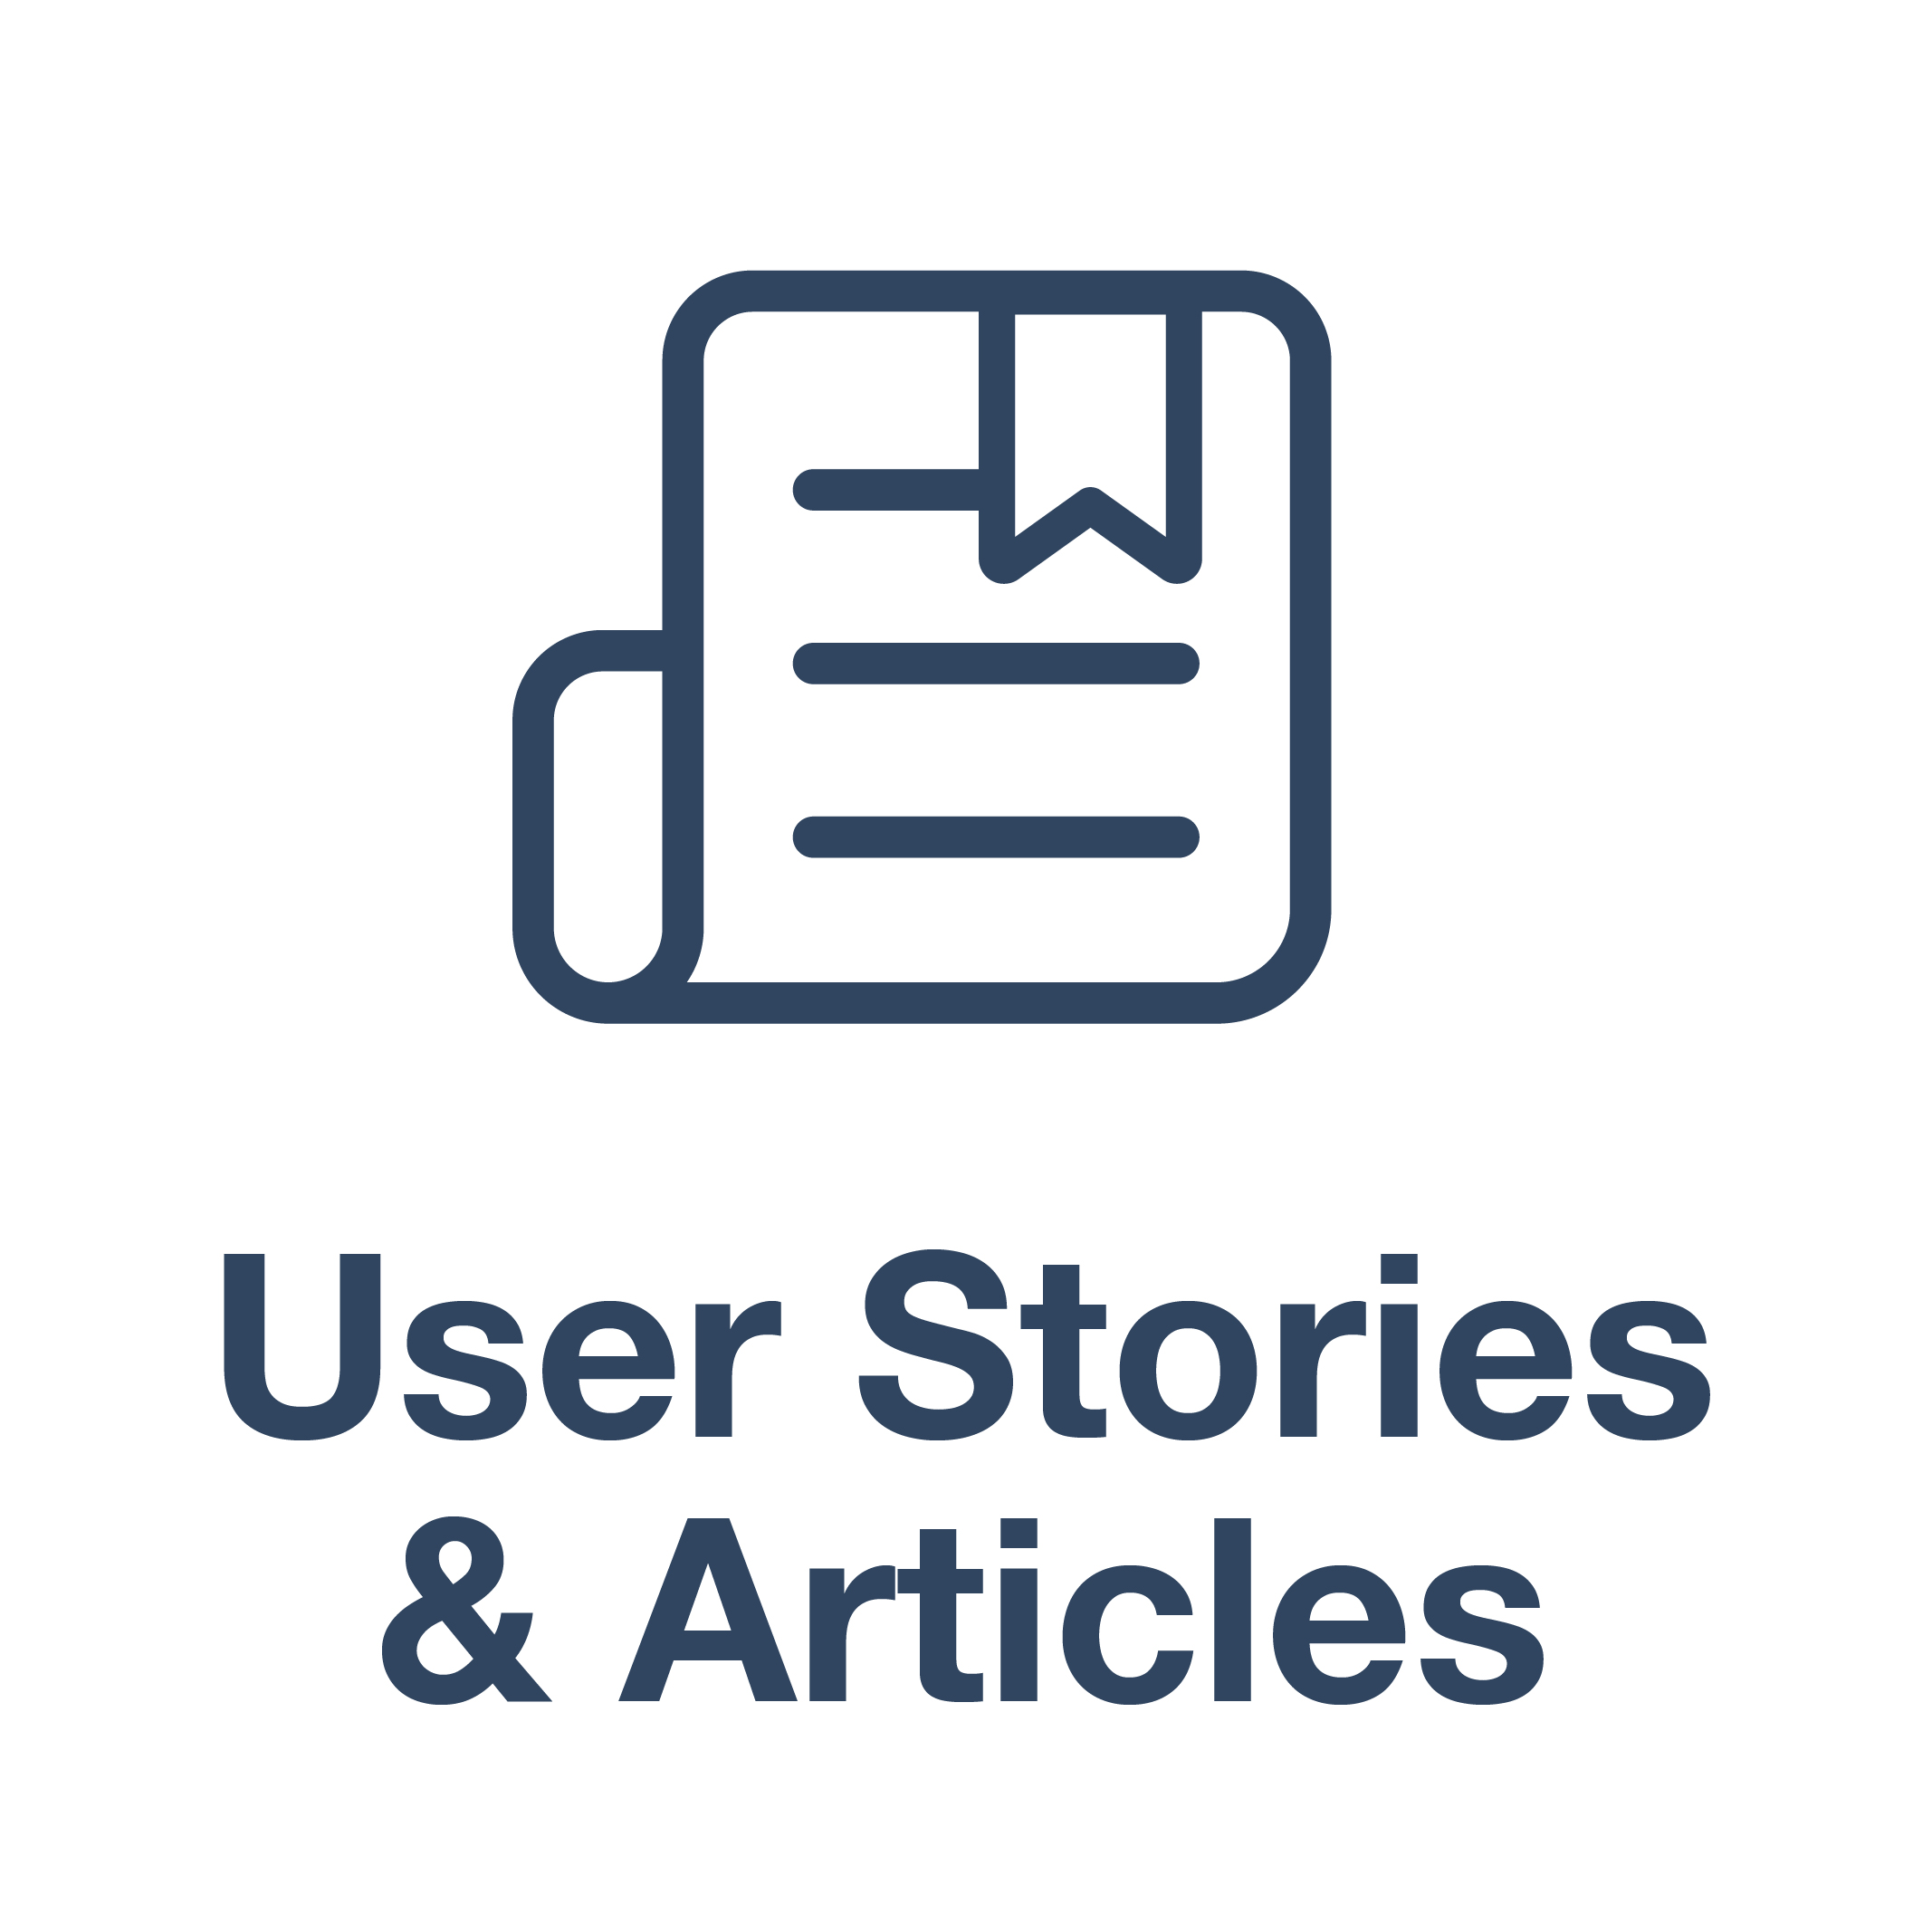 User stories and Articles